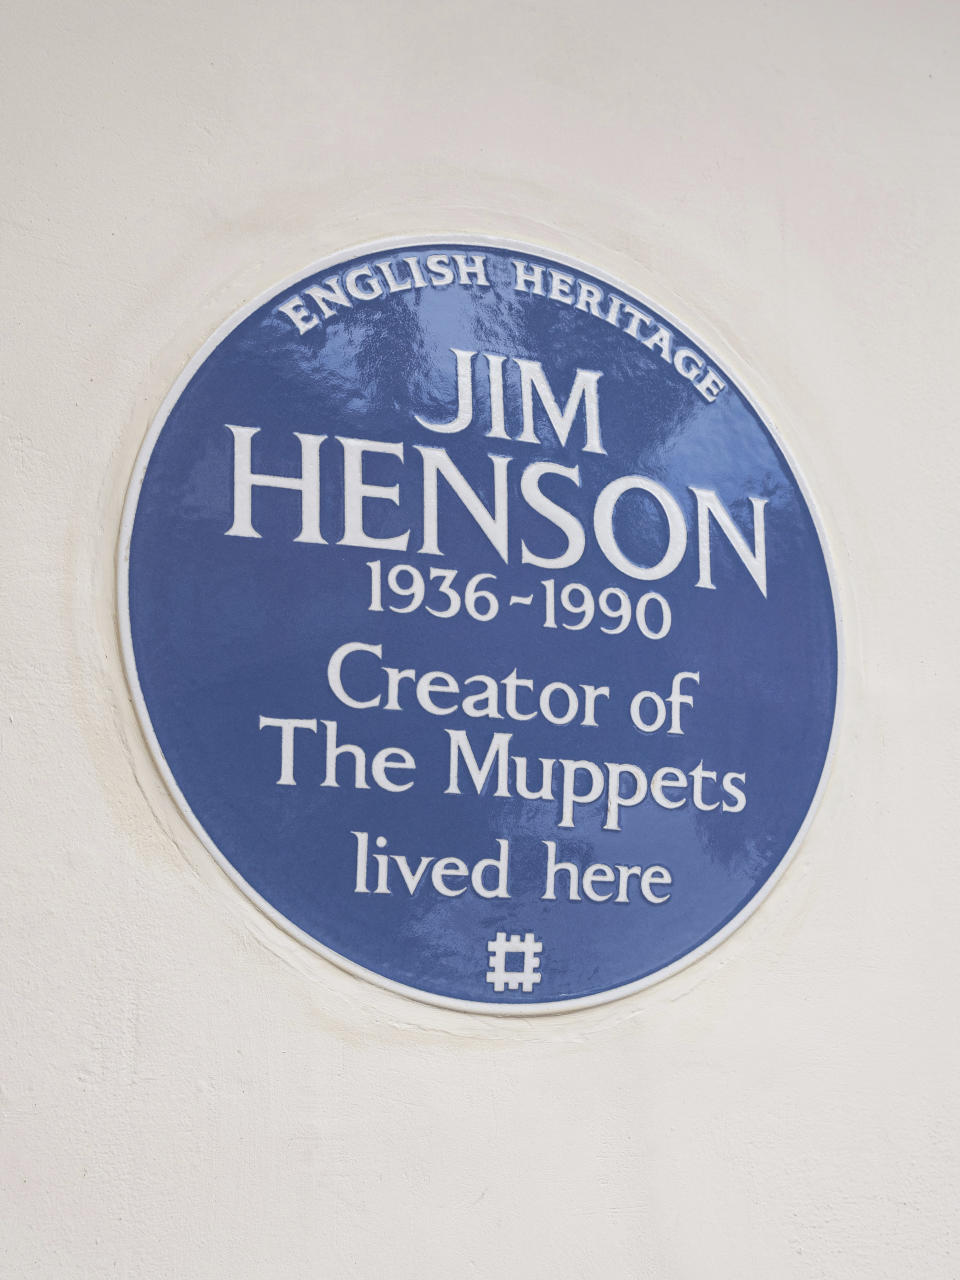 In this undated photo provided by English Heritage a view of the blue plaque on the former London home of Jim Henson, creator of The Muppets, who has been honoured with a blue plaque. The American creator of the Muppets was honored Tuesday, Sept, 7, 2021 in Britain with a blue plaque at his former home in north London, which he bought after 'The Muppet Show' was commissioned for British television — 50 Downshire Hill in Hampstead in north London to be precise. (English Heritage via AP)